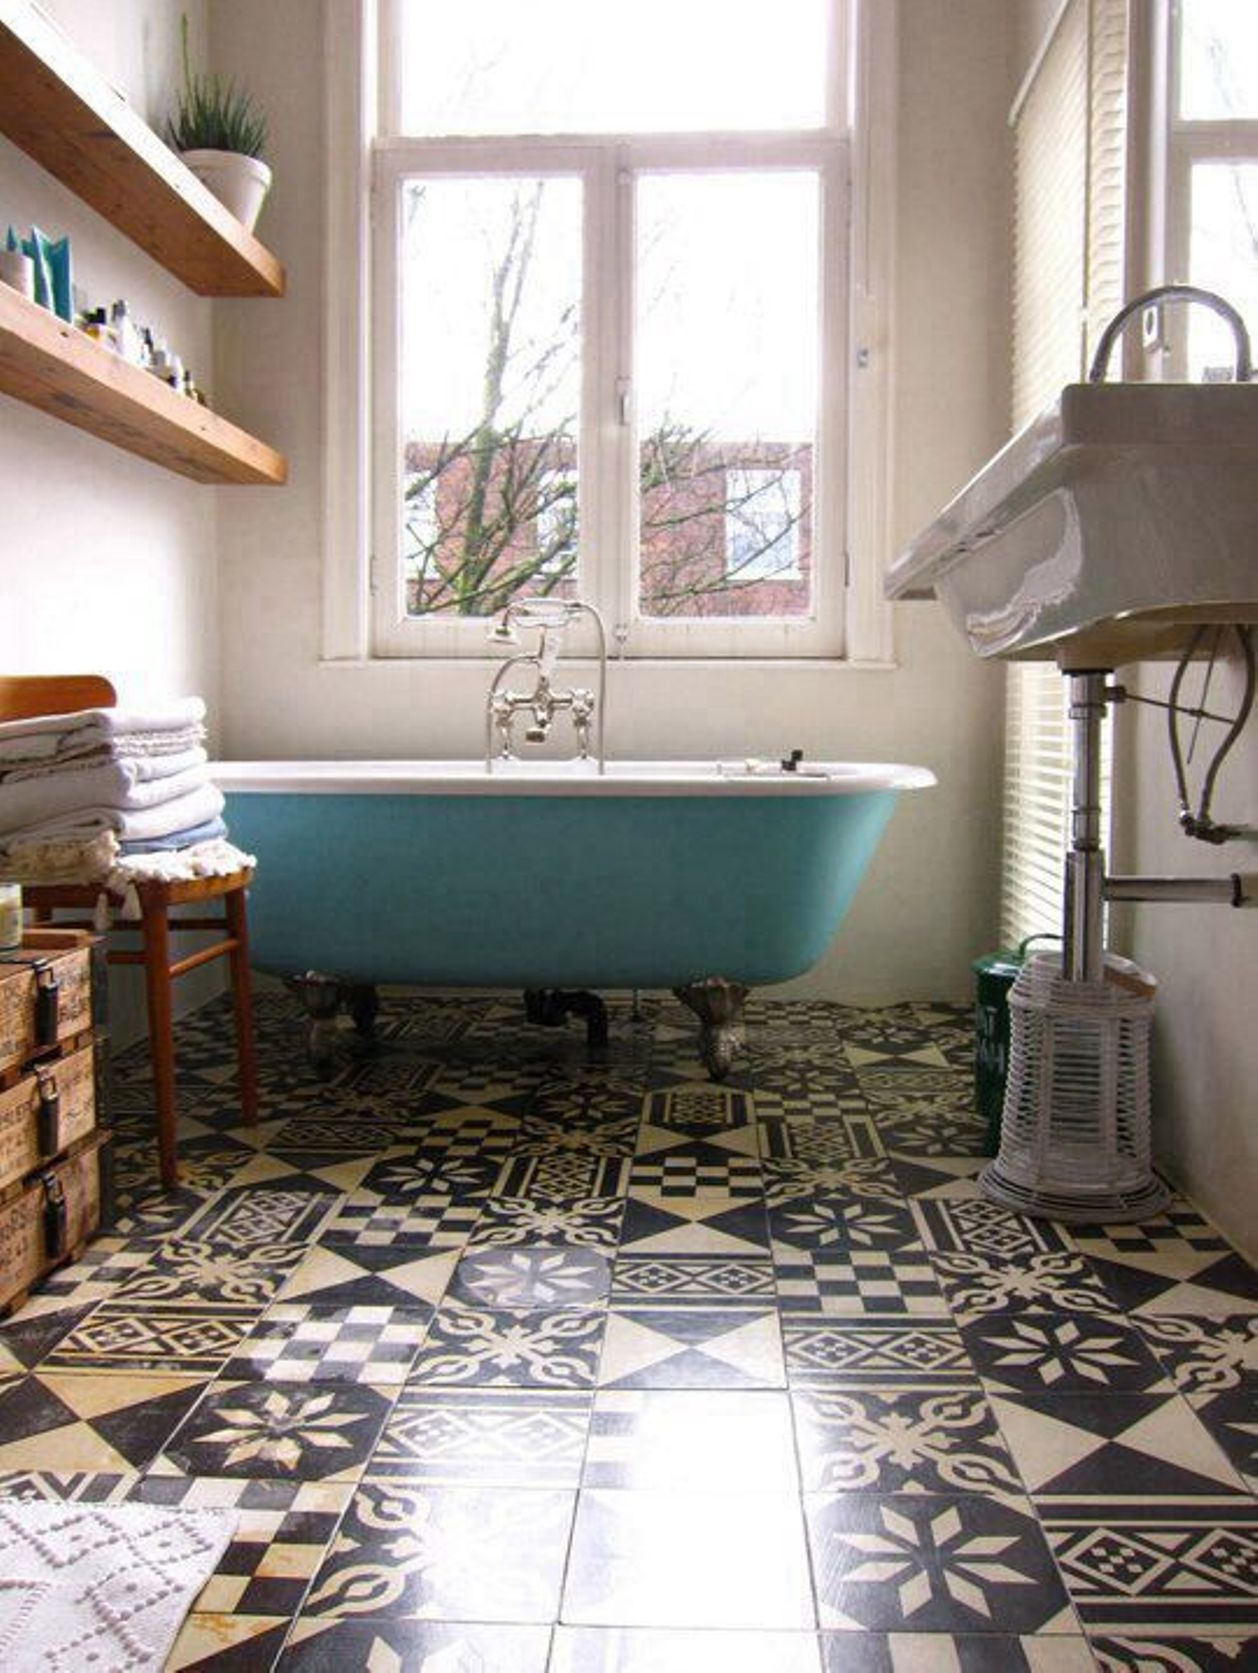 bathroom-beautiful-bathroom-design-ideas-for-small-space-with-blue-tub-and-woode-shelves-vintage-bathroom-tile-patterns-ideas